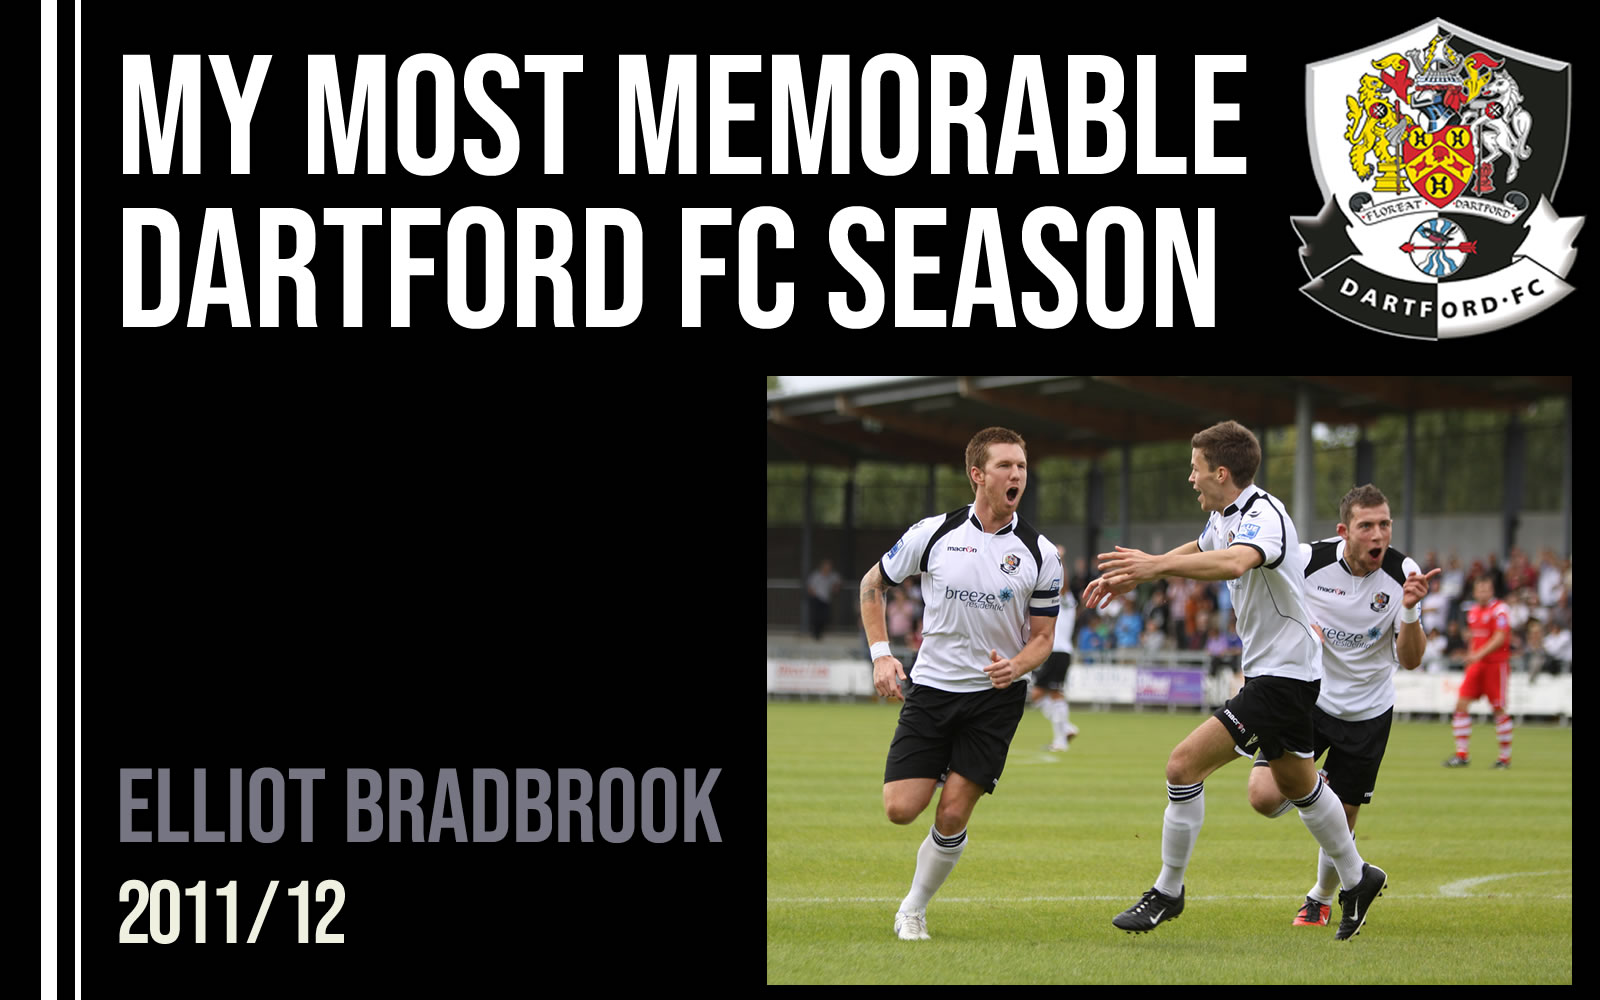 My most memorable season - Elliot Bradbrook